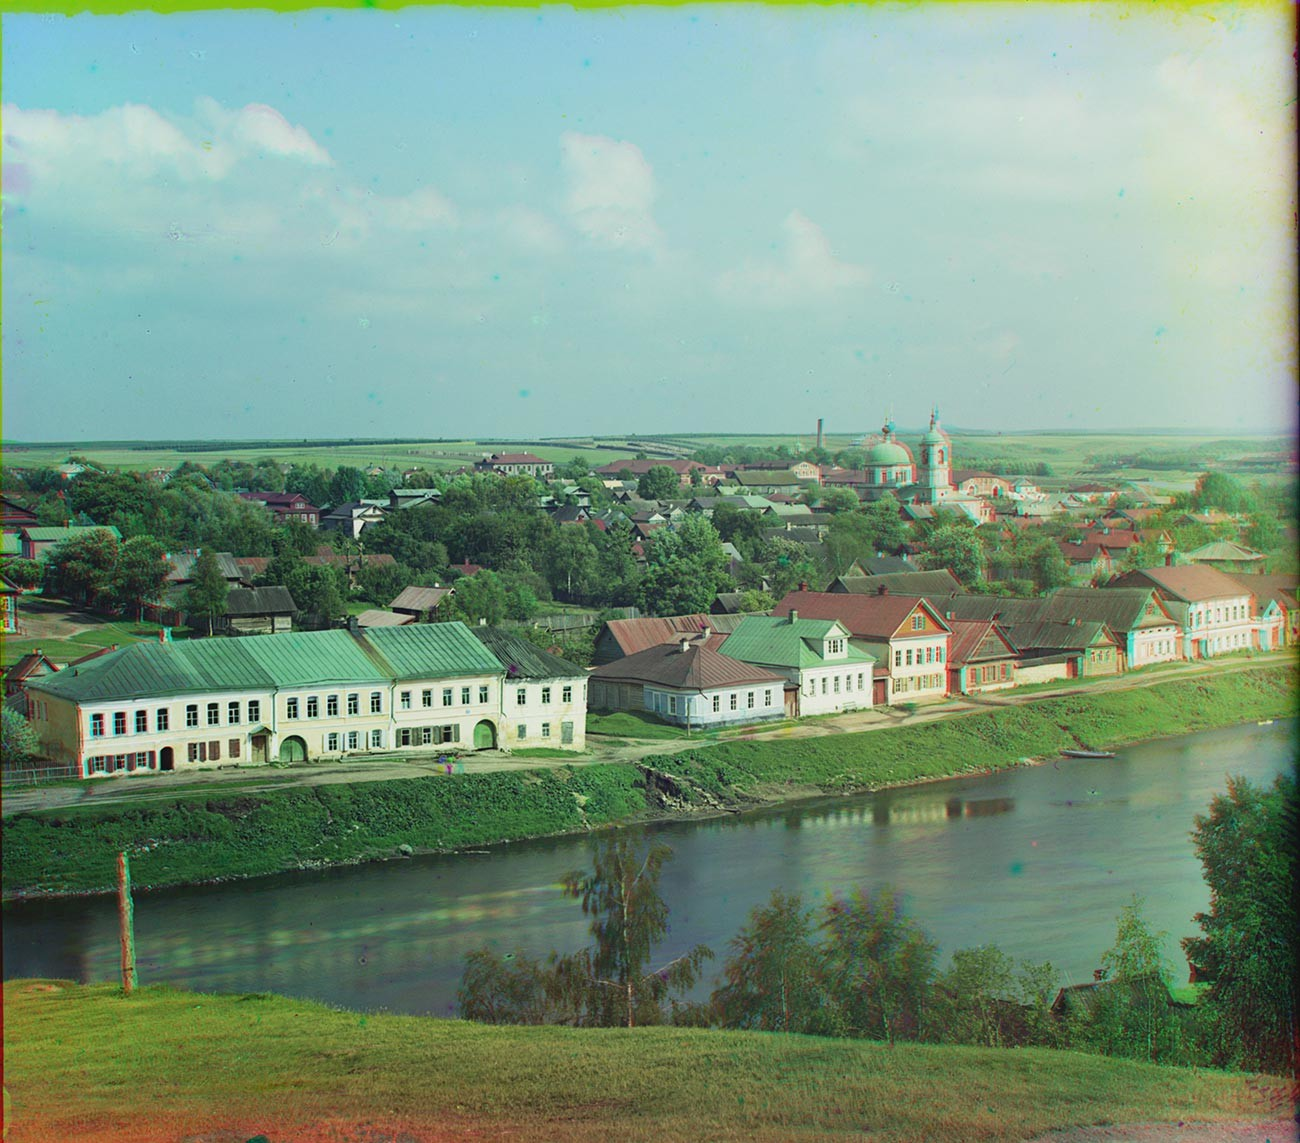 Torzhok. View southwest from bluff overlooking Tvertsa River near Sts. Boris & Gleb Monastery. Center on the horizon: tree-lined Moscow road (location of Znamenskoye-Rayok estate to the right). Summer 1910.